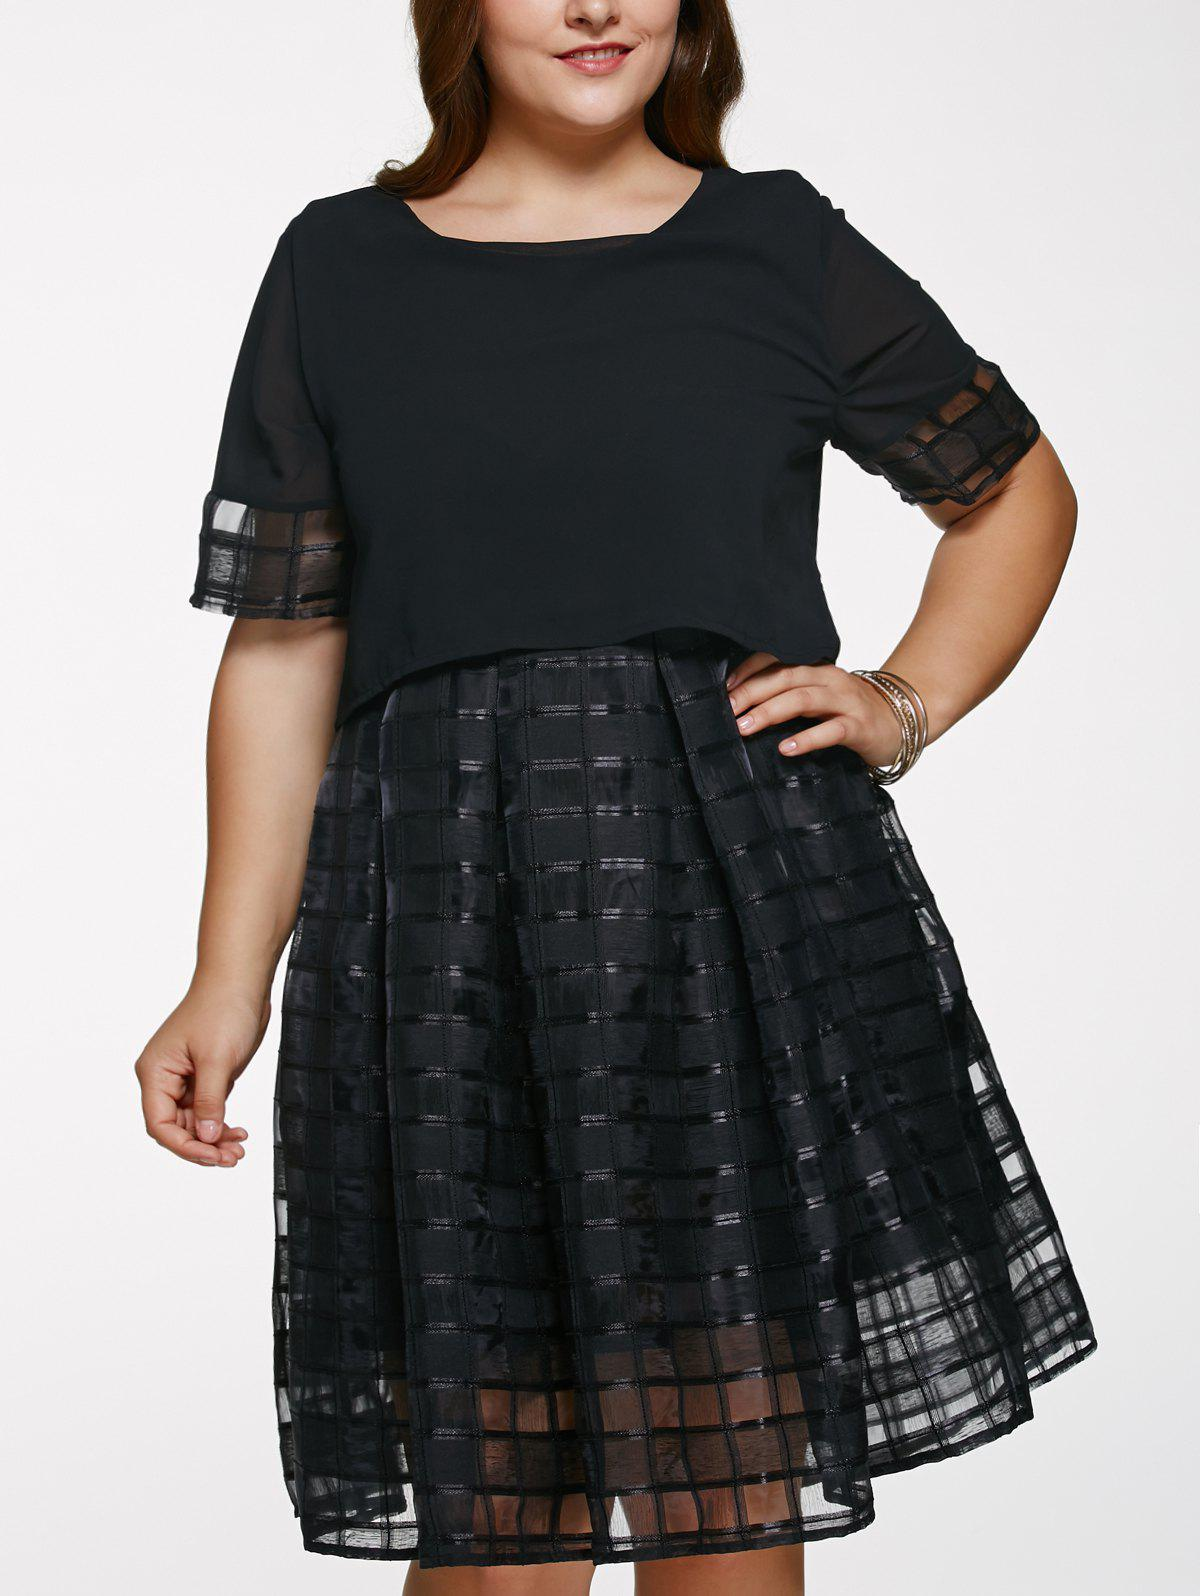 Chic Scoop Neck Plus Size See-Through Dress